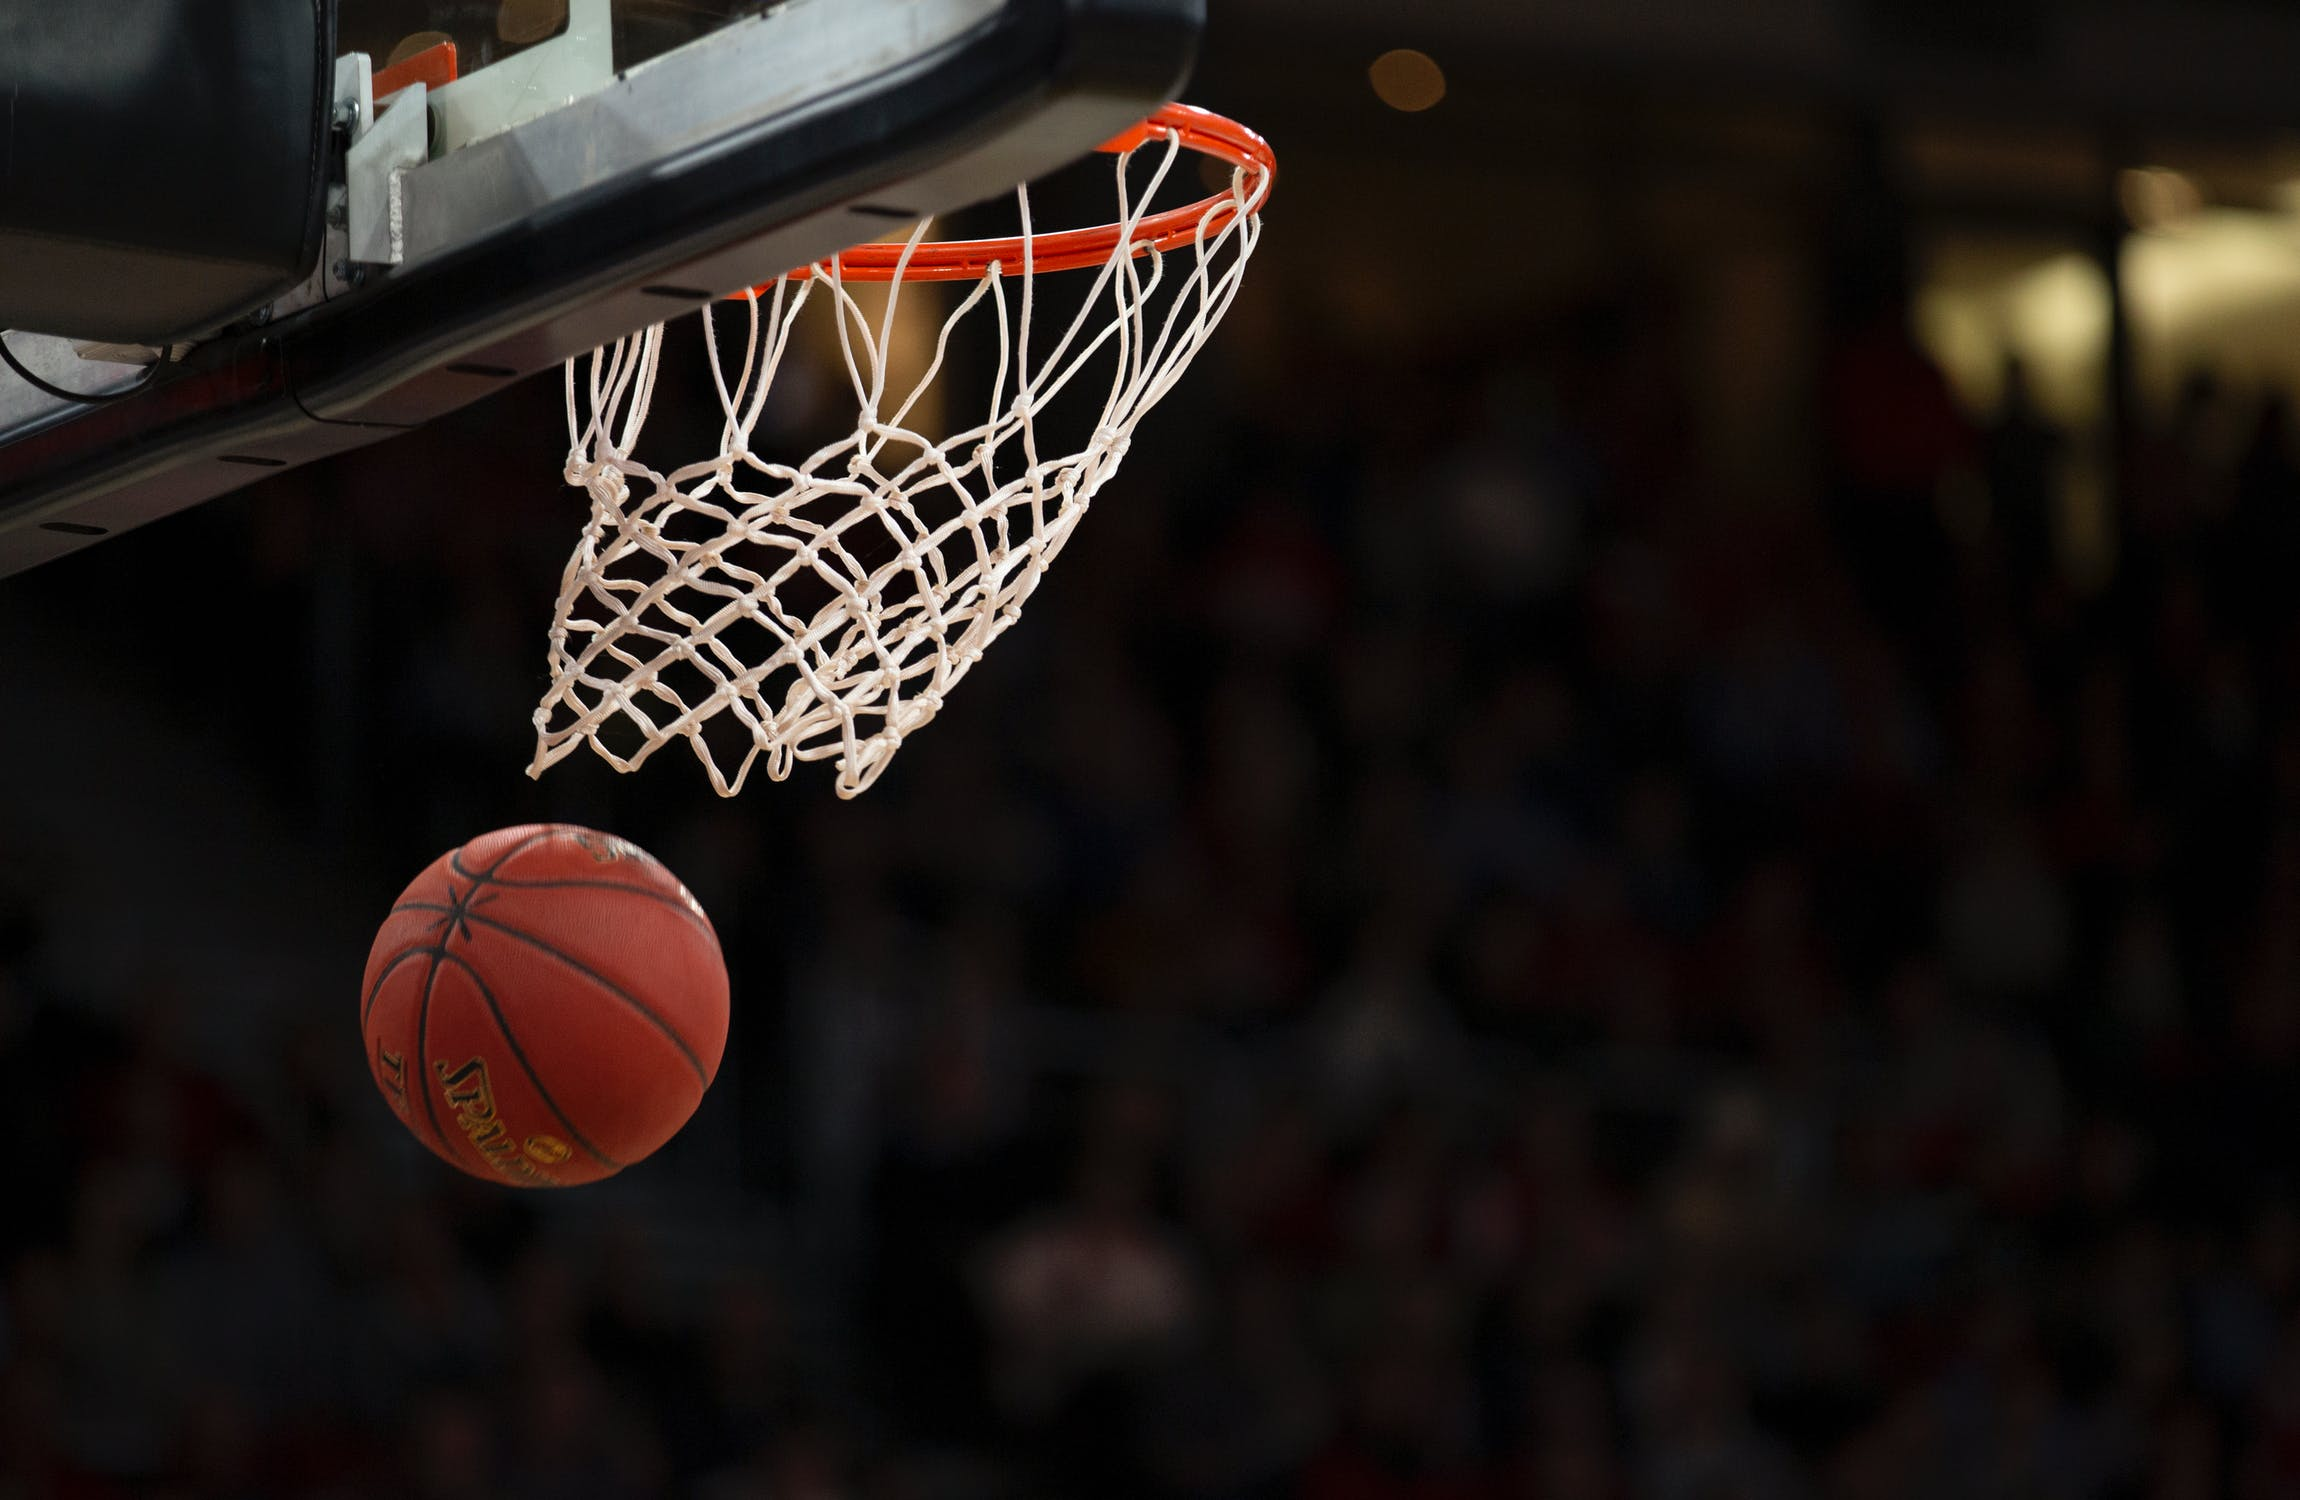 Is EuroLeague Ever Going to Catch up with the NBA?